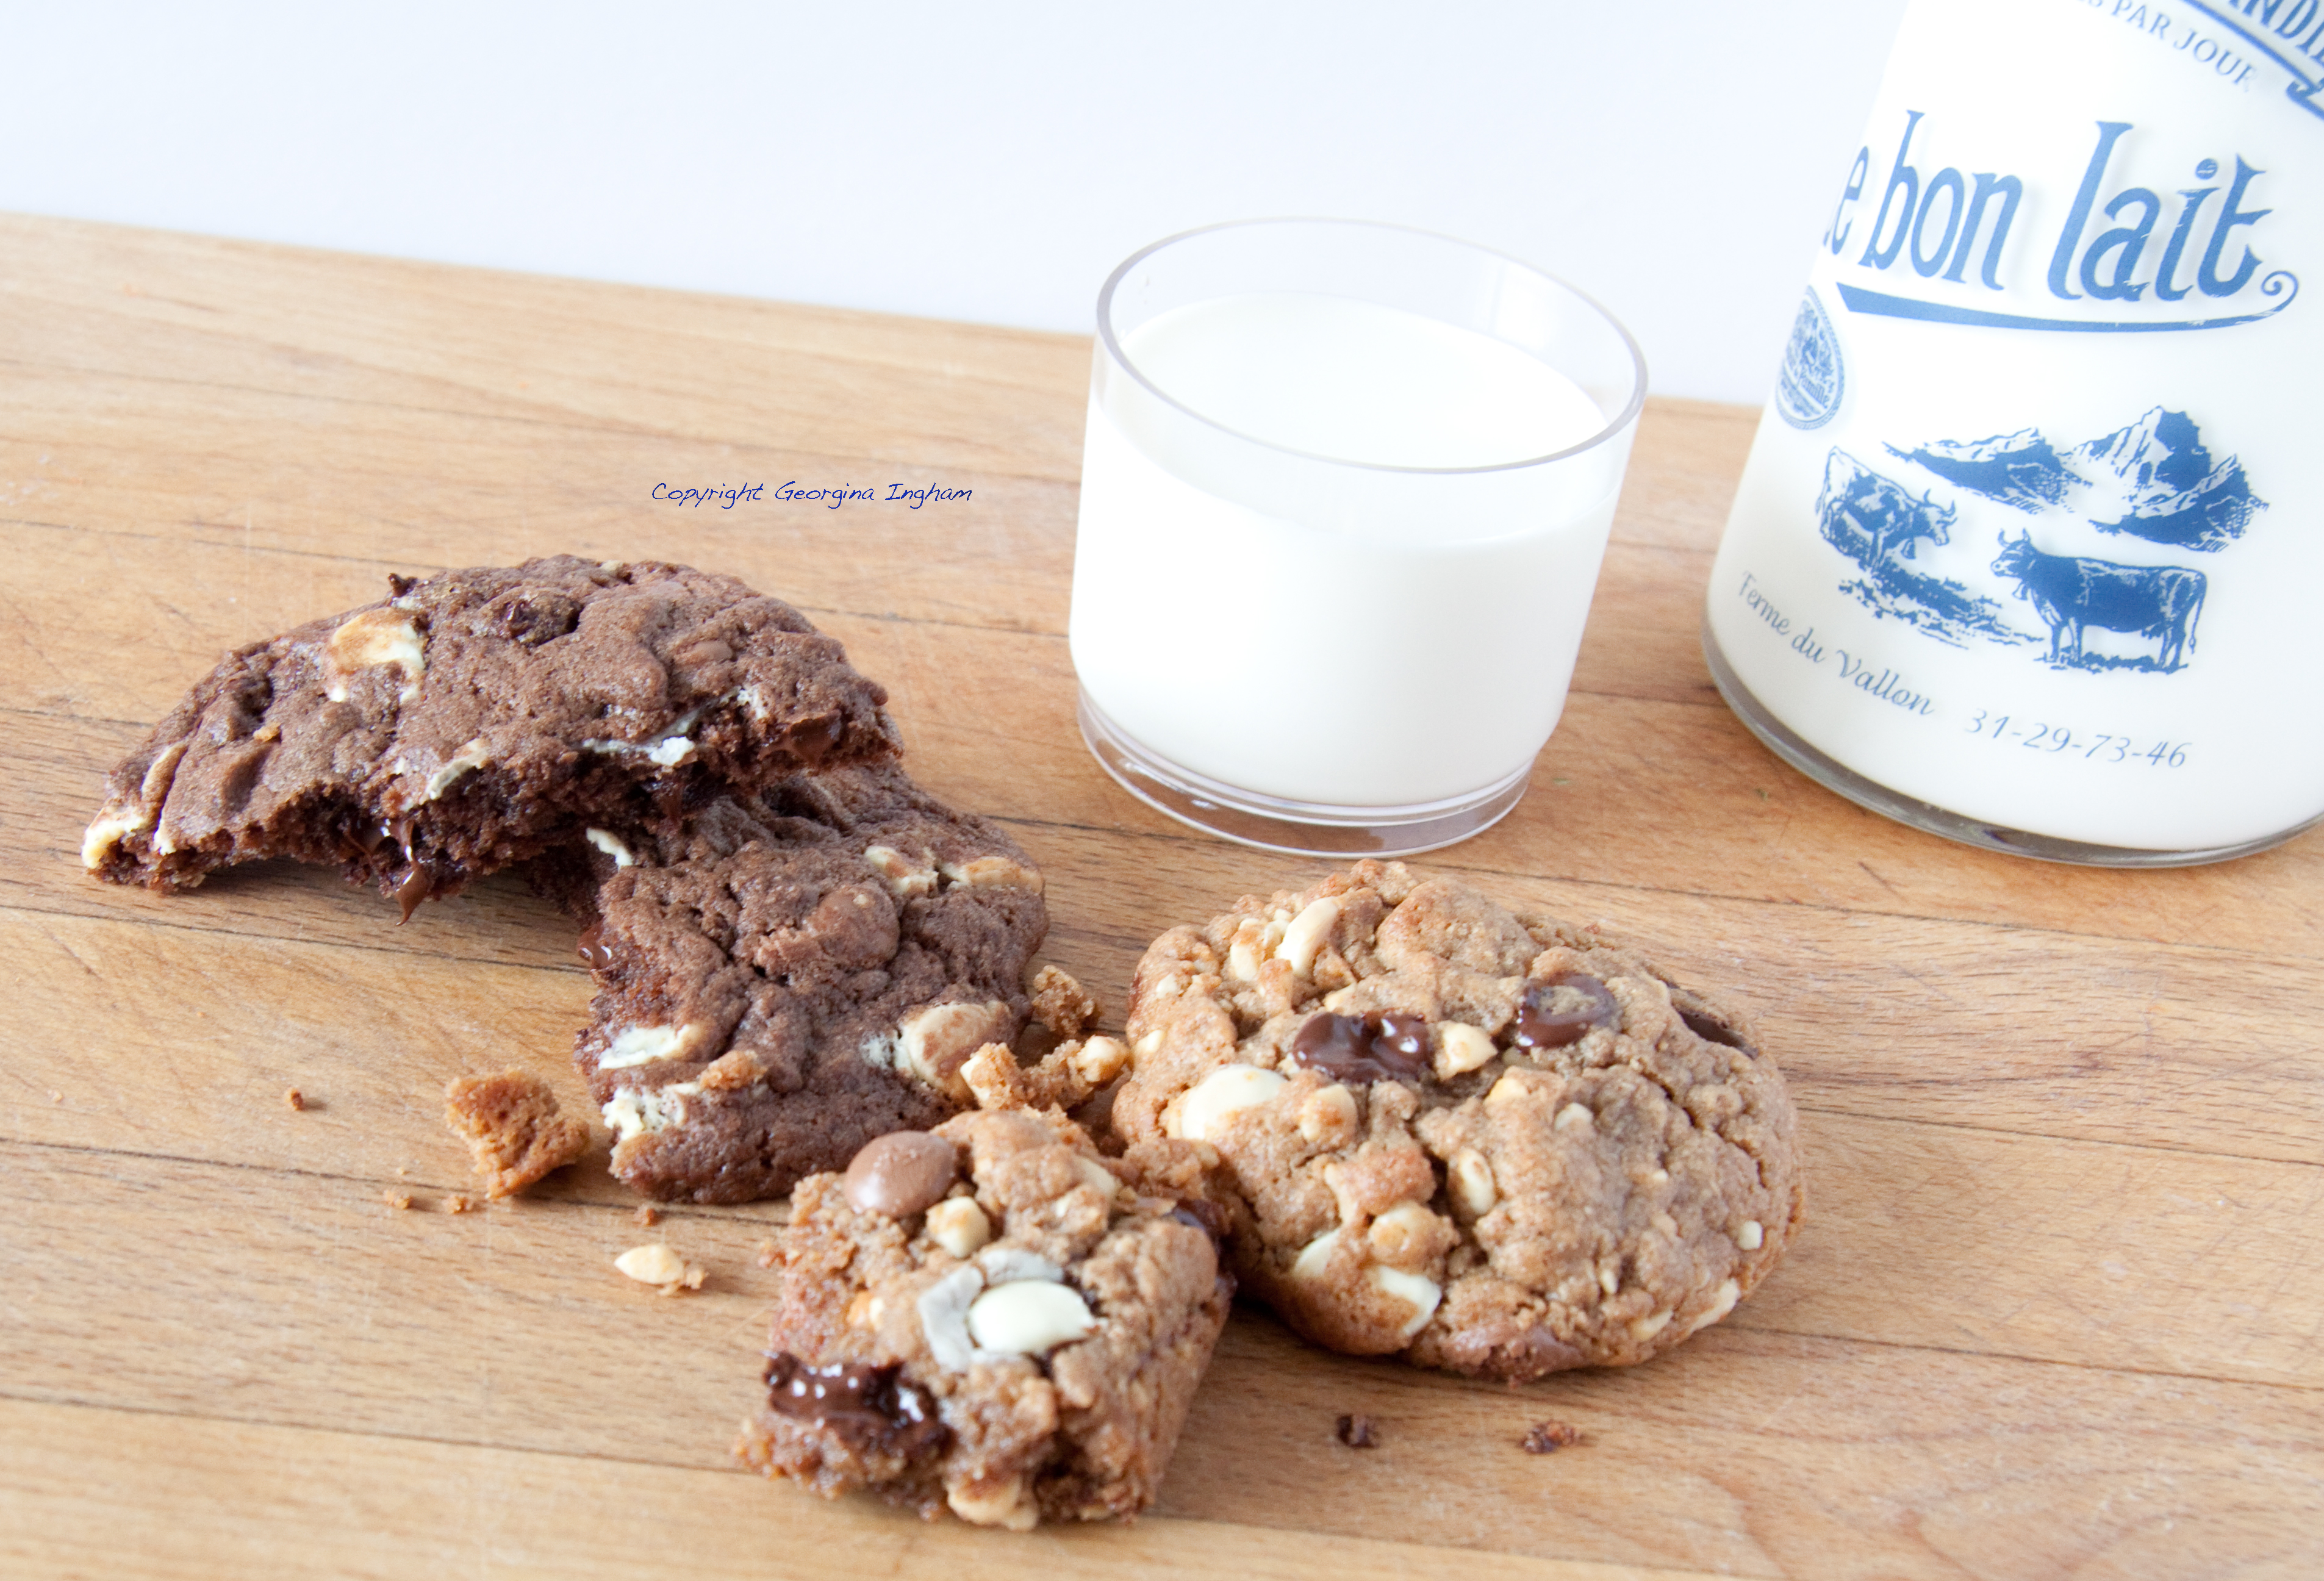 Triple Chocolate Buckwheat Cookies & Flourless Peanut Butter Chocolate Chip Cookies